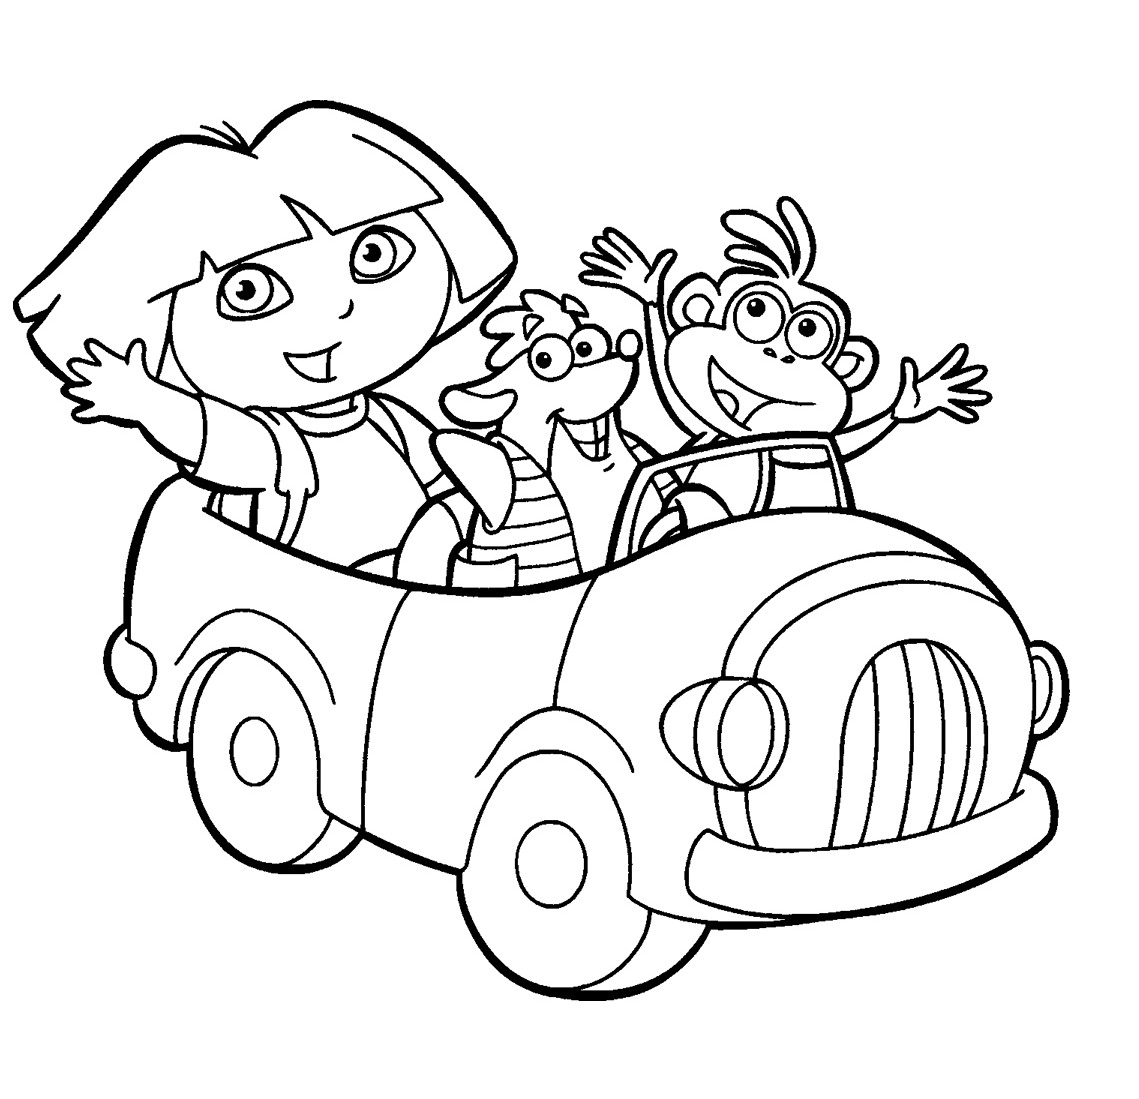 dora coloring pictures dora colouring pictures 2 coloring pages to print pictures dora coloring